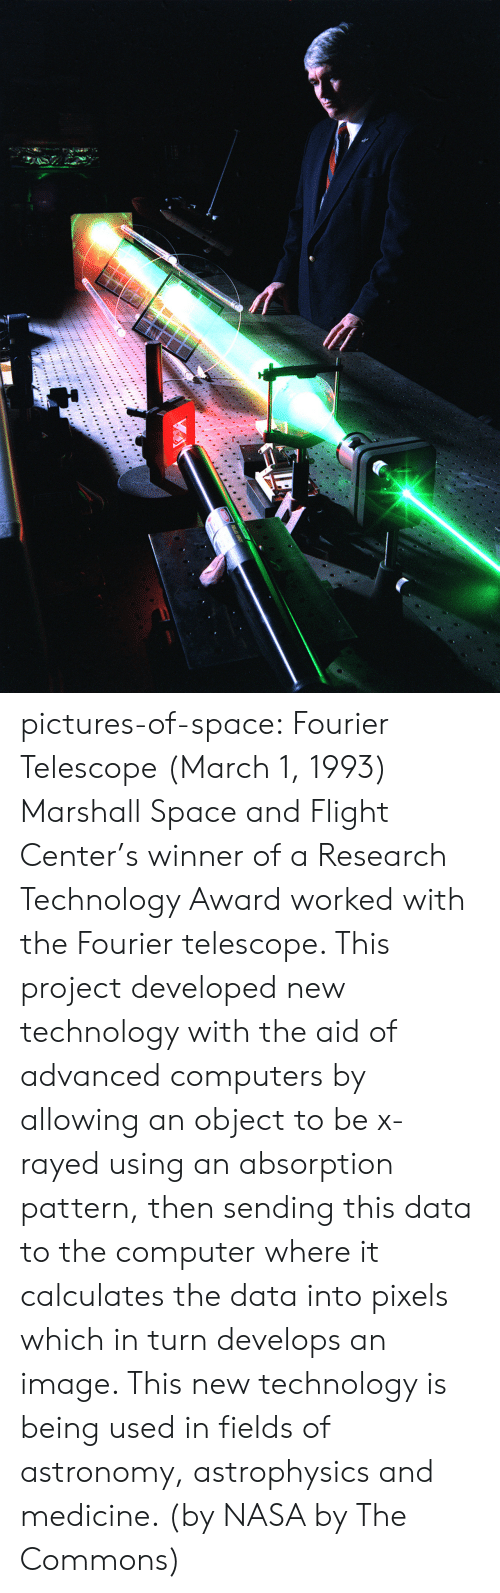 astrophysics: pictures-of-space:    Fourier Telescope   (March 1, 1993) Marshall Space and Flight Center's winner of a Research Technology Award worked with the Fourier telescope. This project developed new technology with the aid of advanced computers by allowing an object to be x-rayed using an absorption pattern, then sending this data to the computer where it calculates the data into pixels which in turn develops an image. This new technology is being used in fields of astronomy, astrophysics and medicine. (by NASA by The Commons)